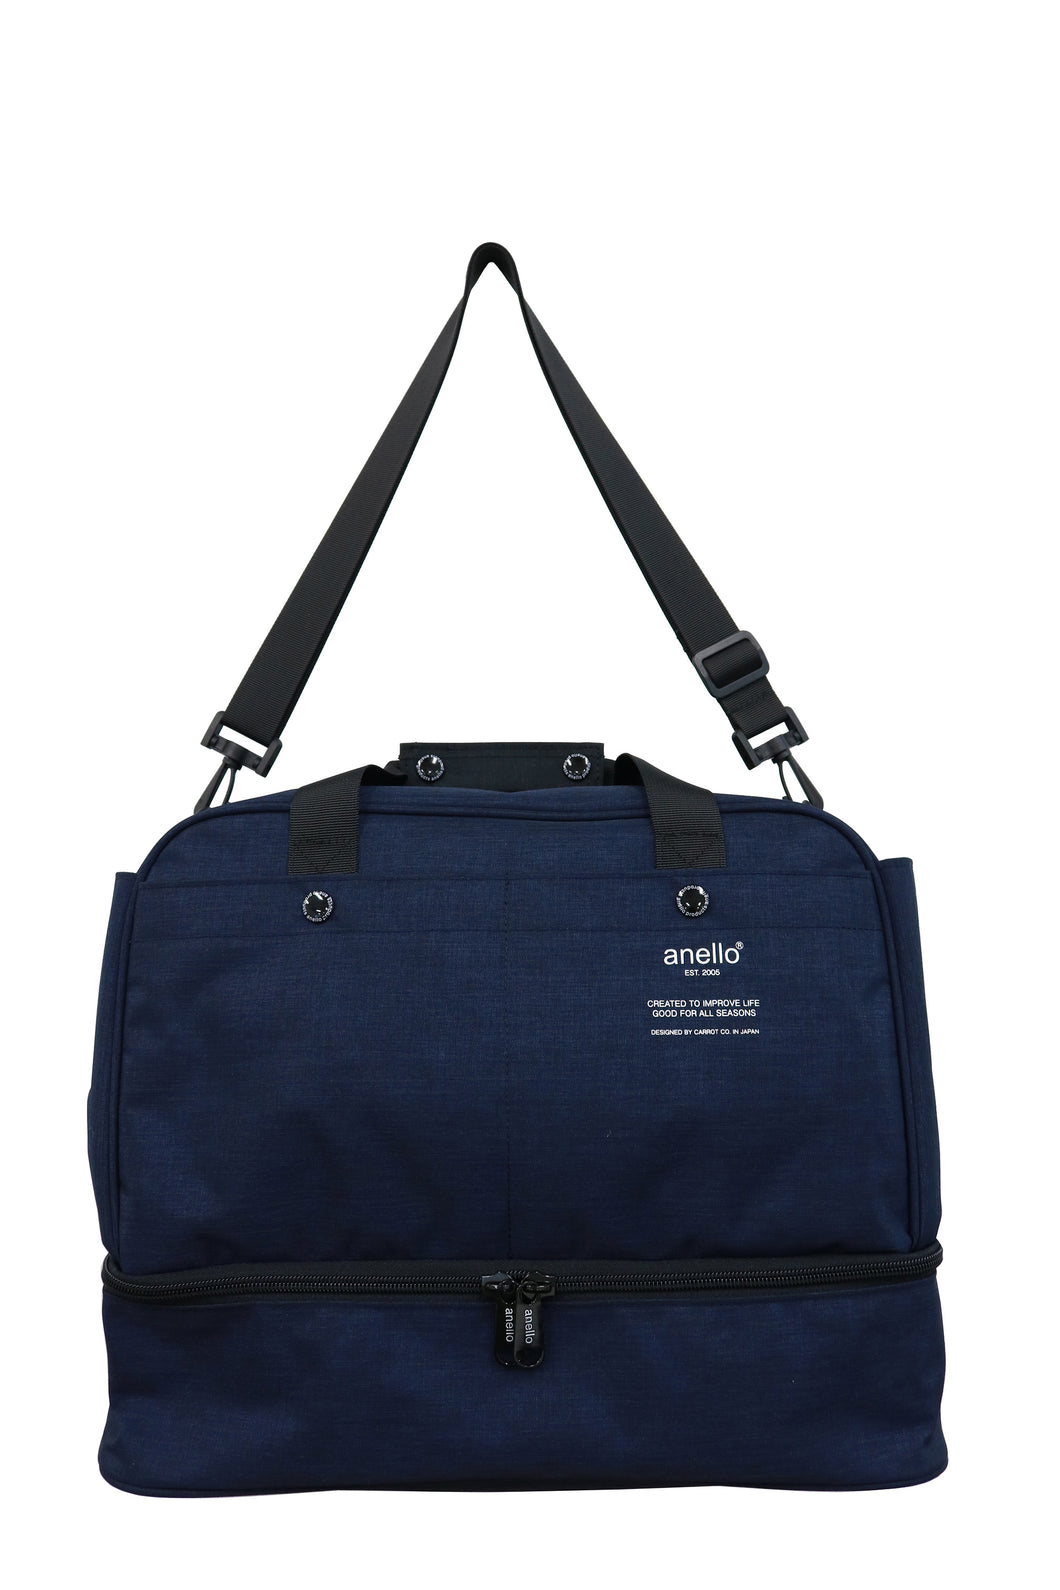 anello / 2Way Mini Boston Bag AT-B3243 Navy